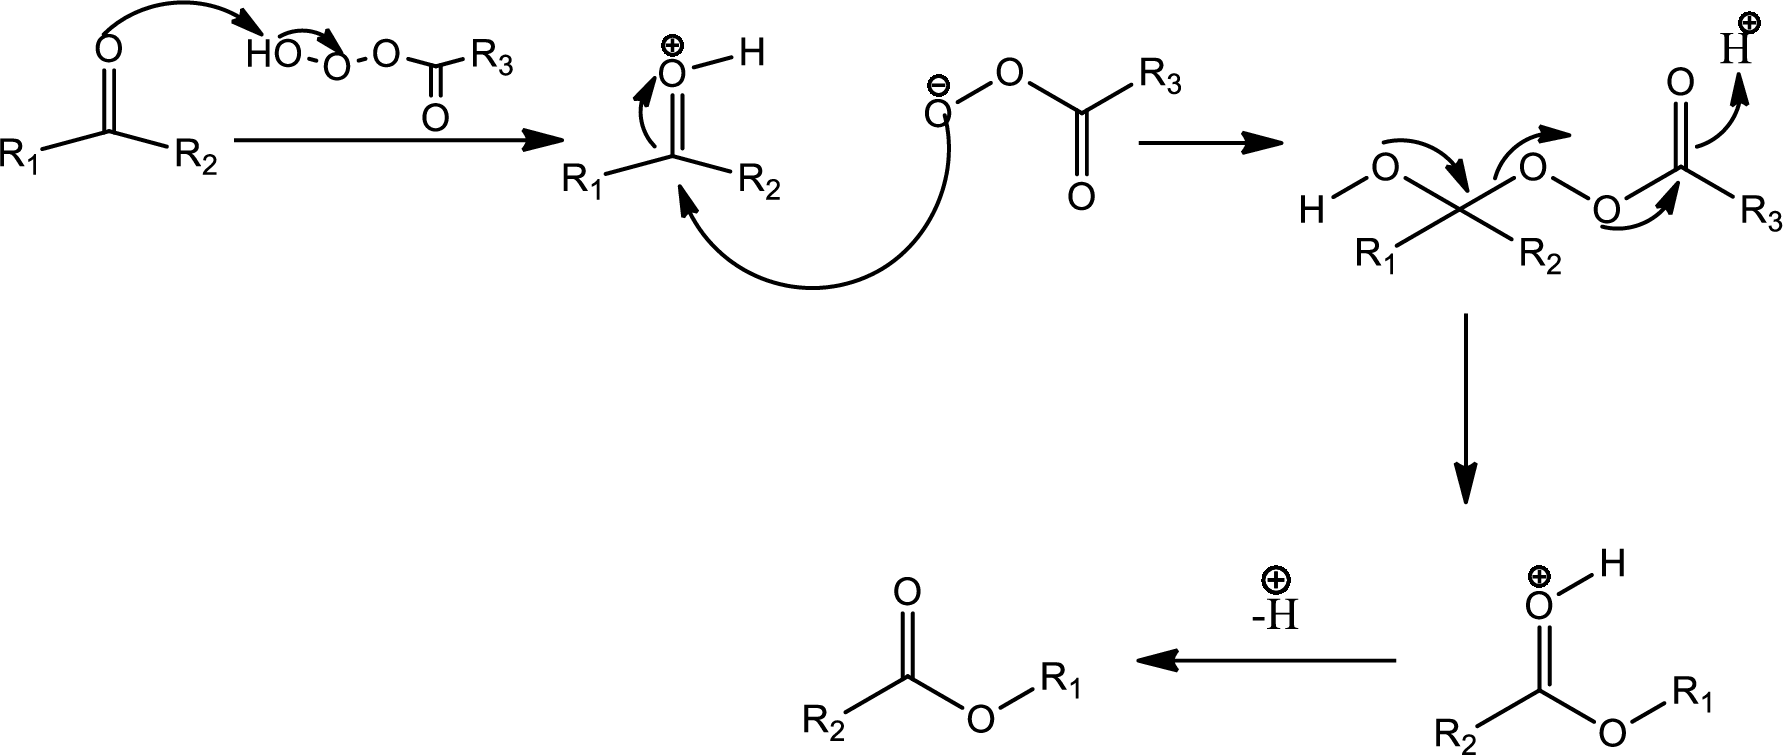 Following is an outline of the stereospecific synthesis of